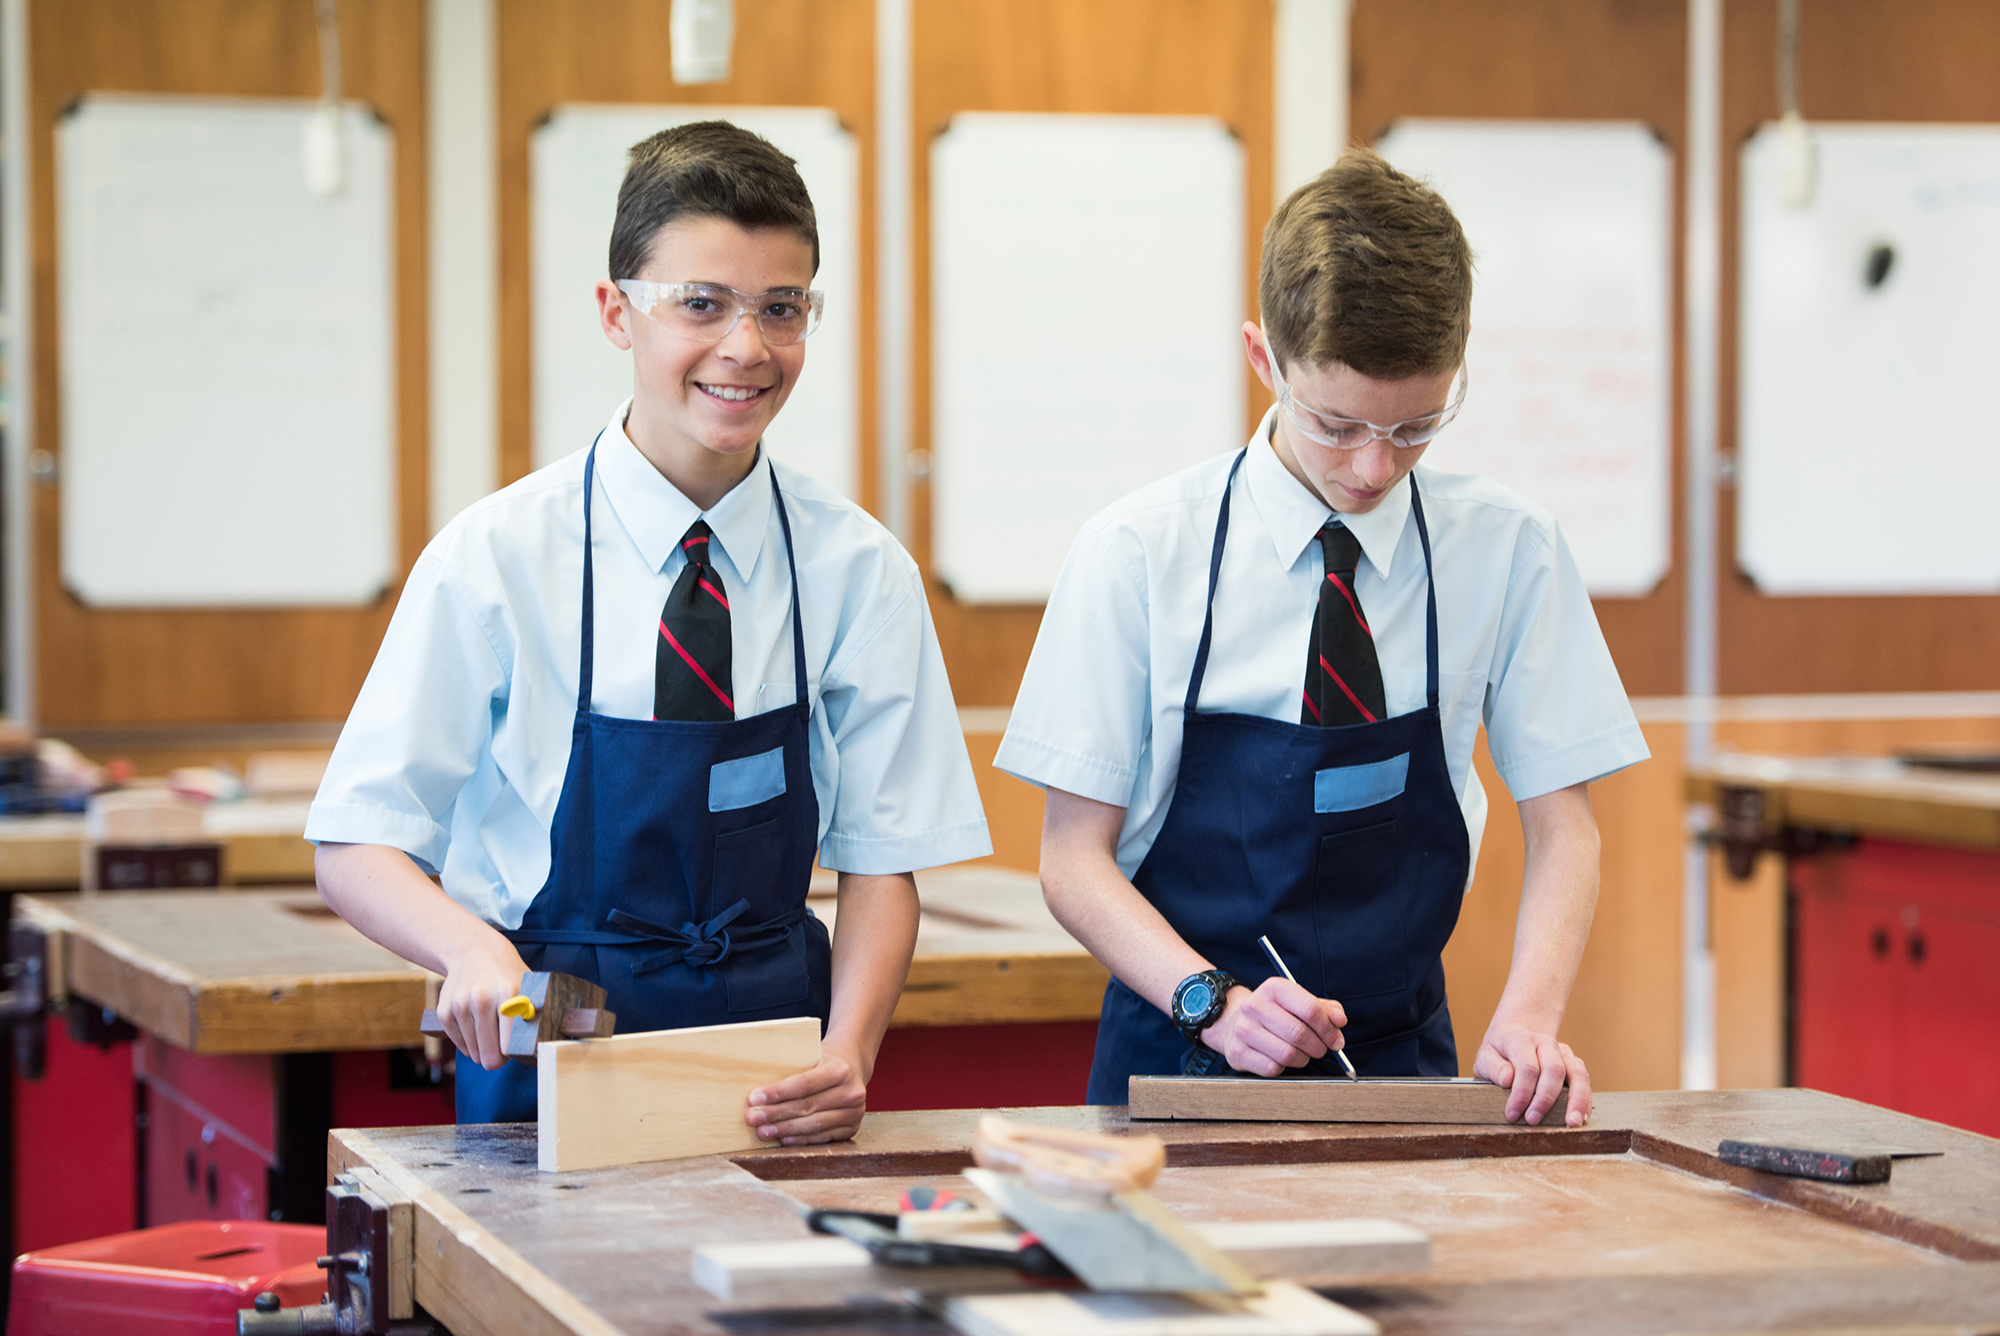 Students complete a woodworking project